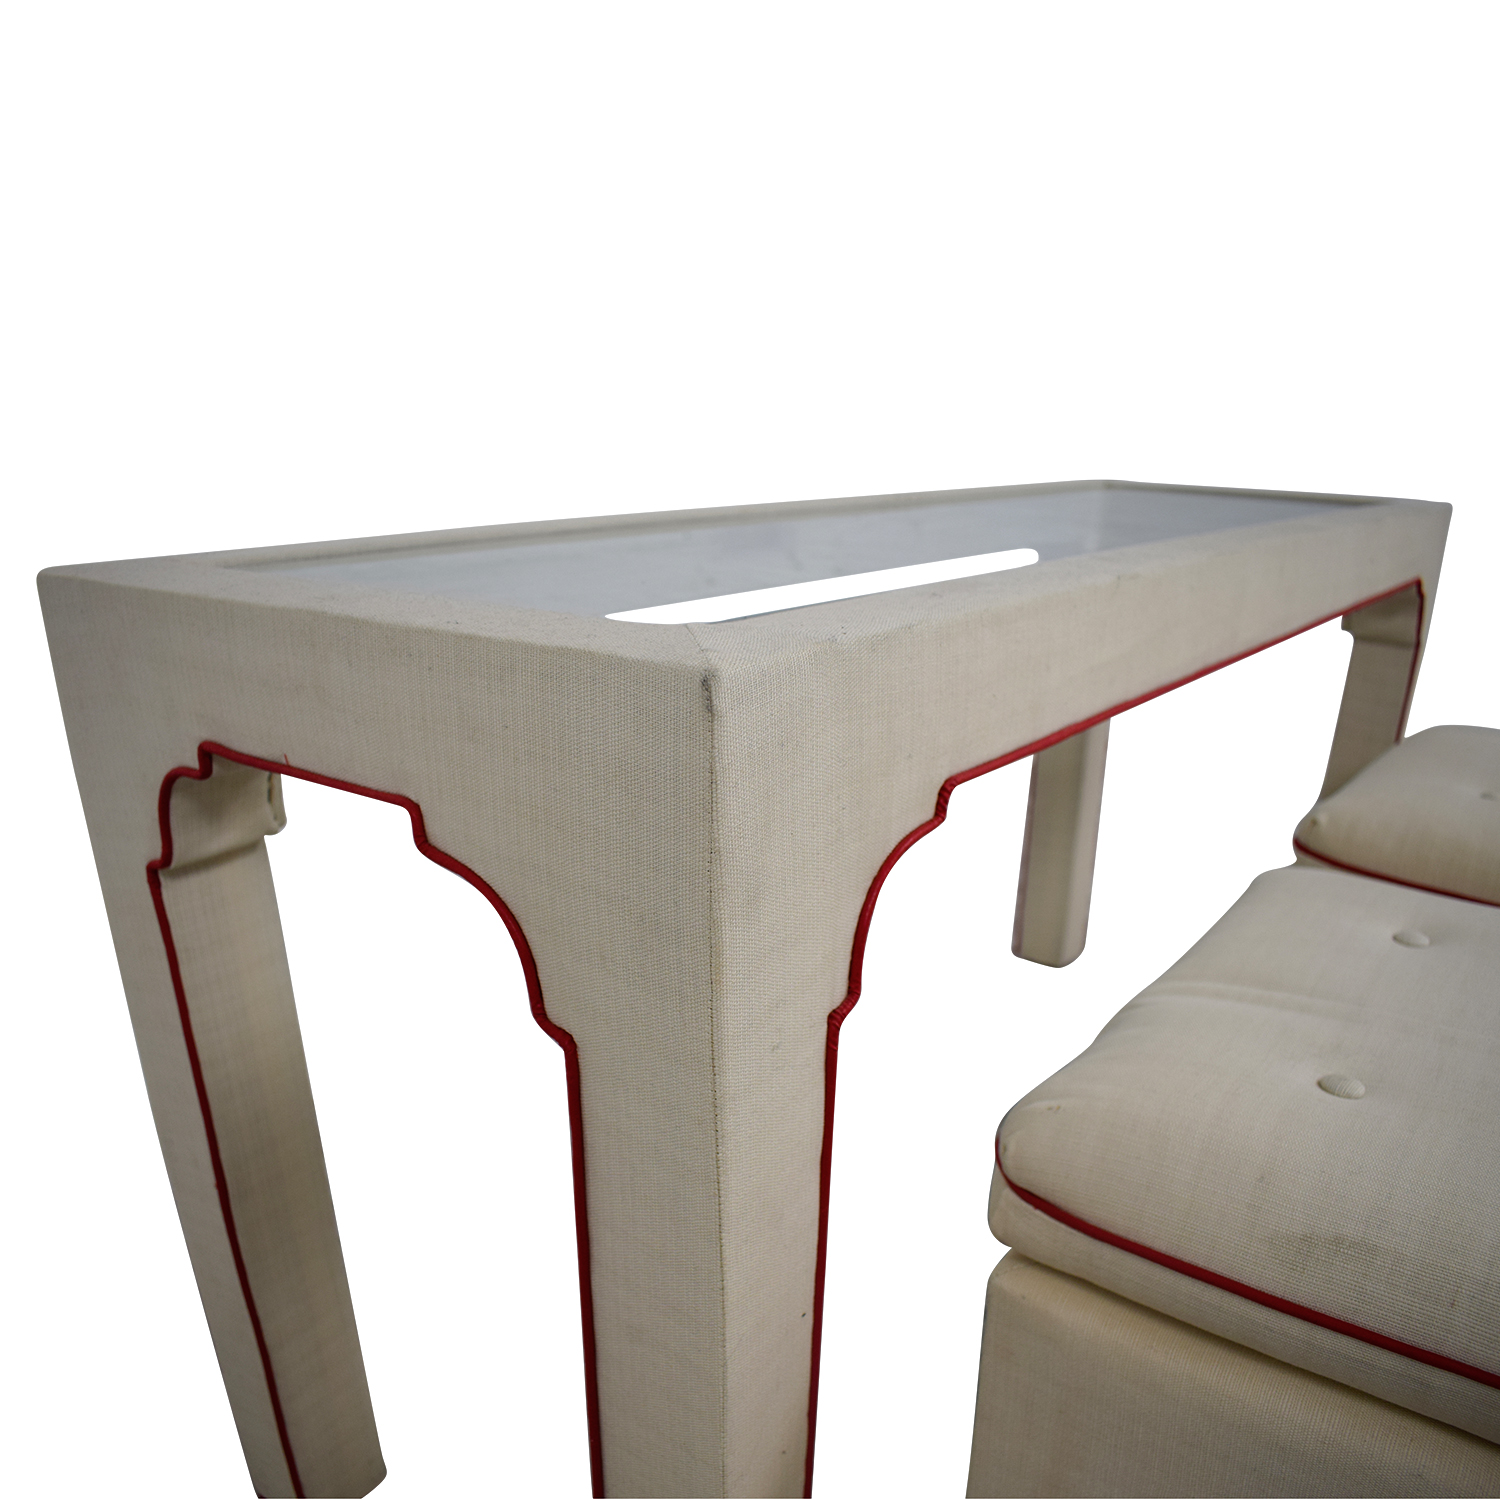 Terrific 89 Off Cream And Red Sofa Table And Stools Tables Short Links Chair Design For Home Short Linksinfo